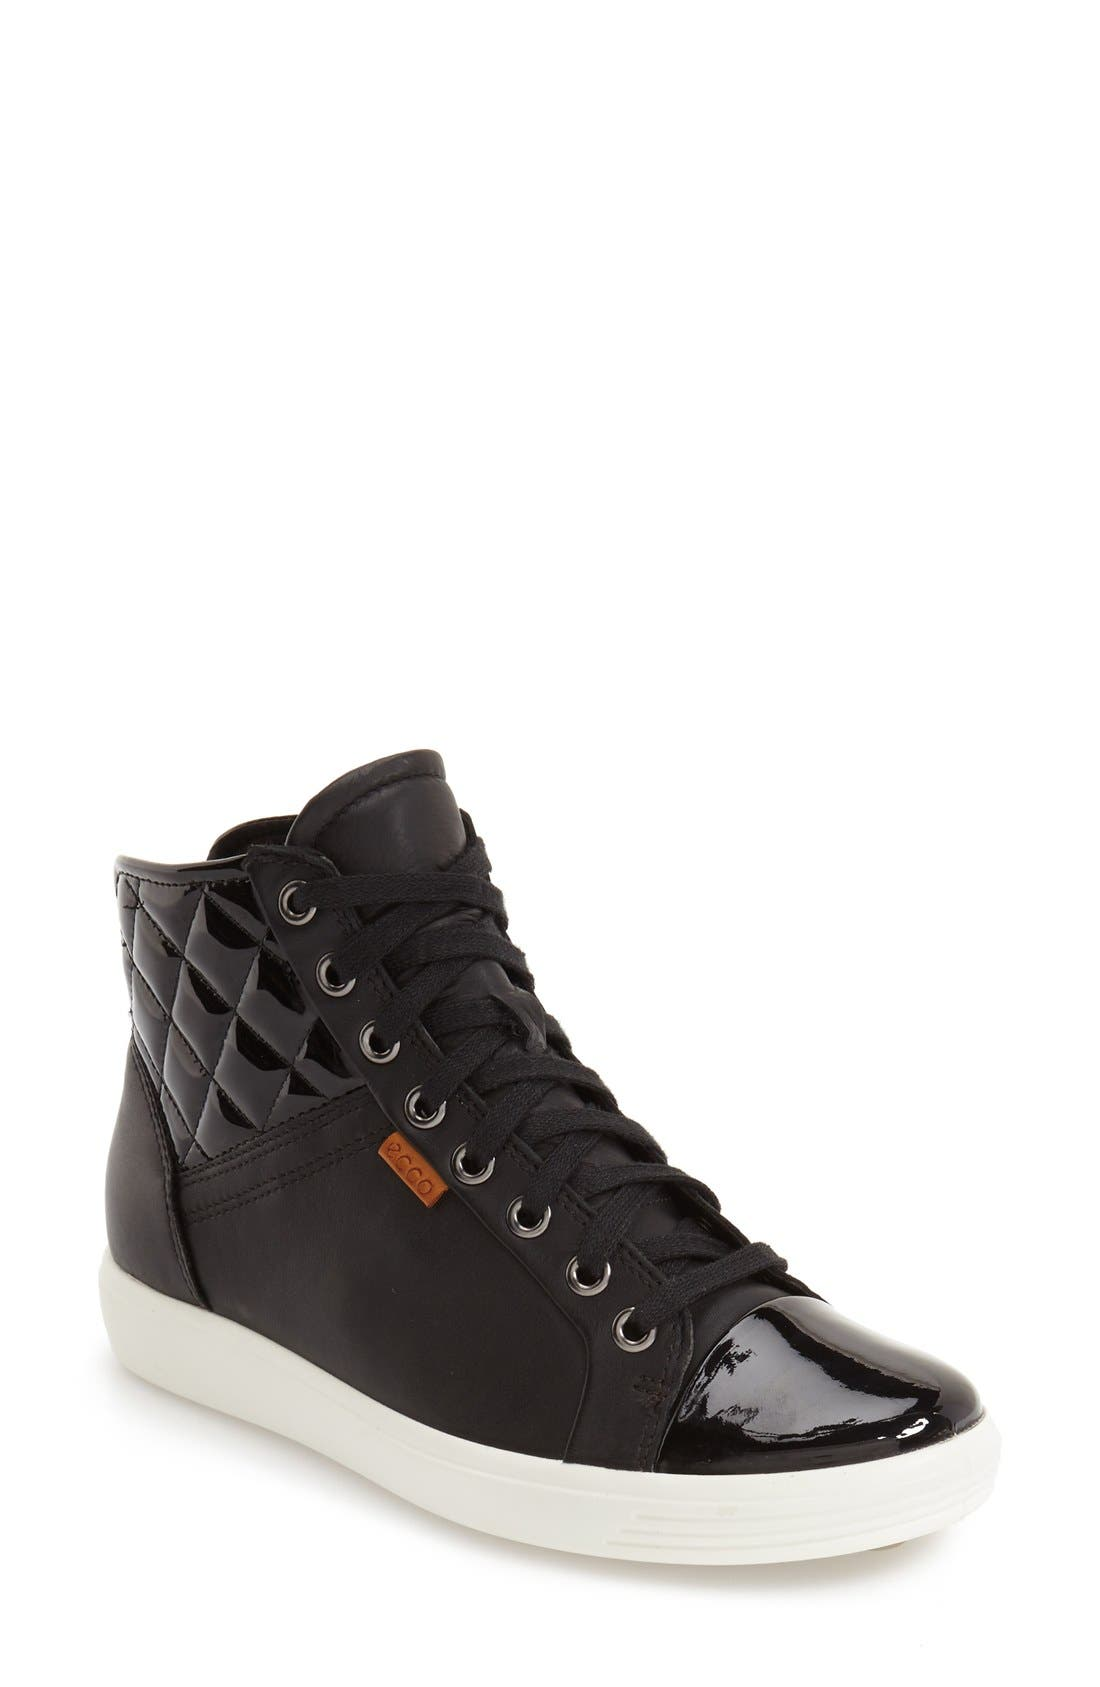 'Soft 7' Quilted High Top Sneaker,                             Main thumbnail 1, color,                             009